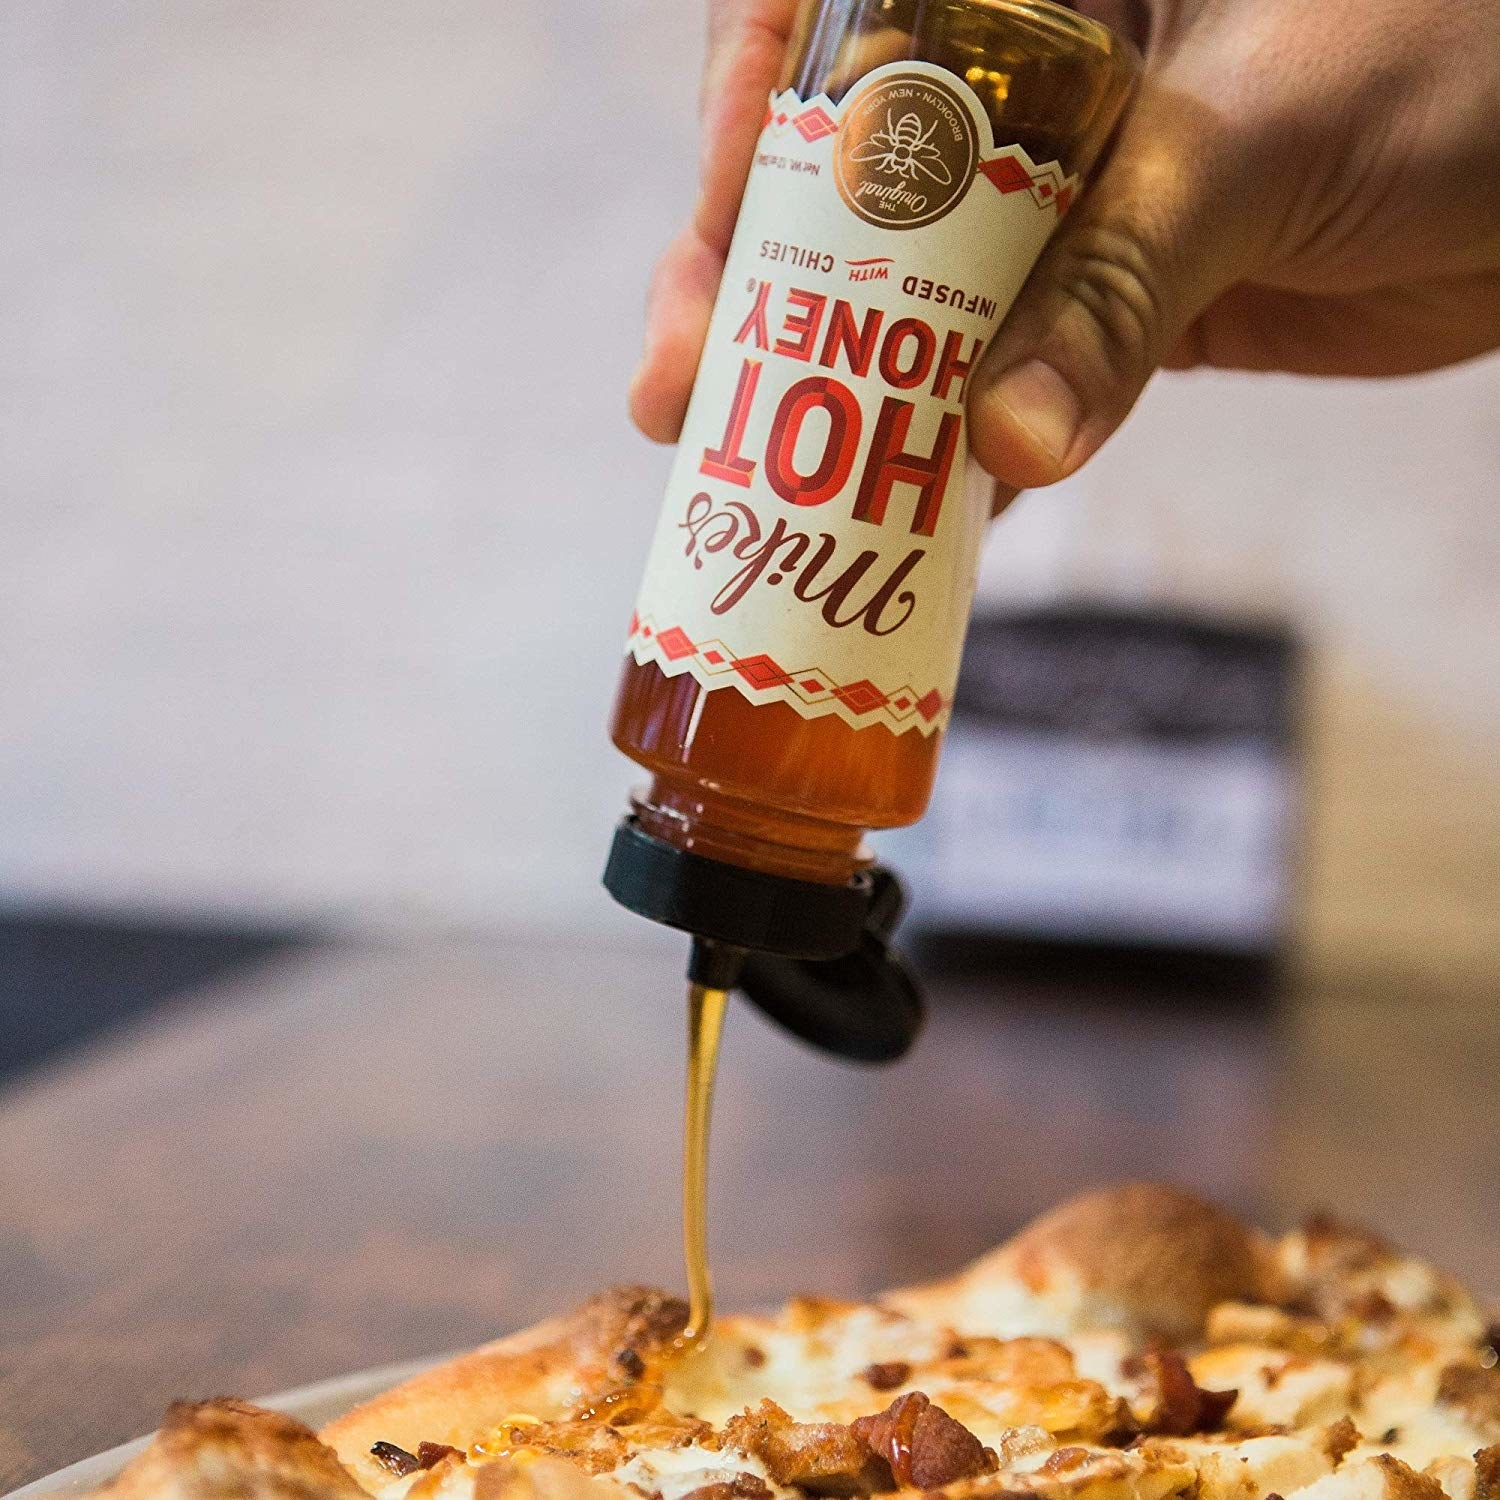 The honey being drizzled on pizza